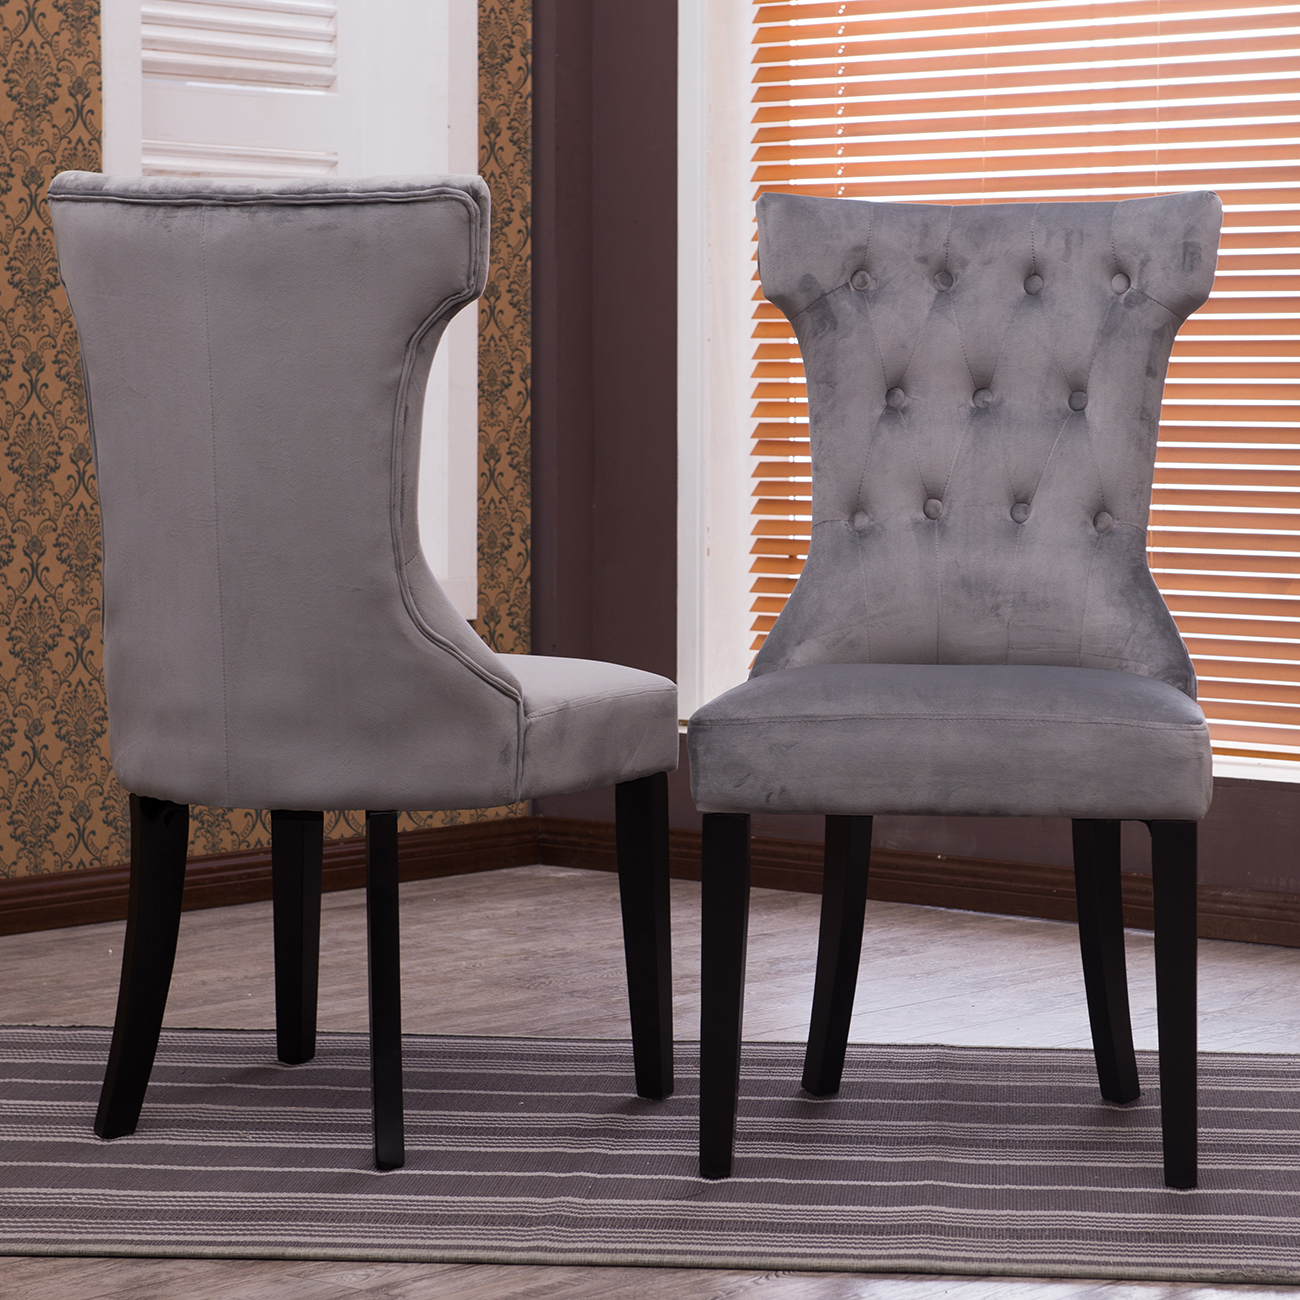 Accent Dining Room Chairs: Set Of 2 Accent Dining Chair Fabric Tufted Modern Living